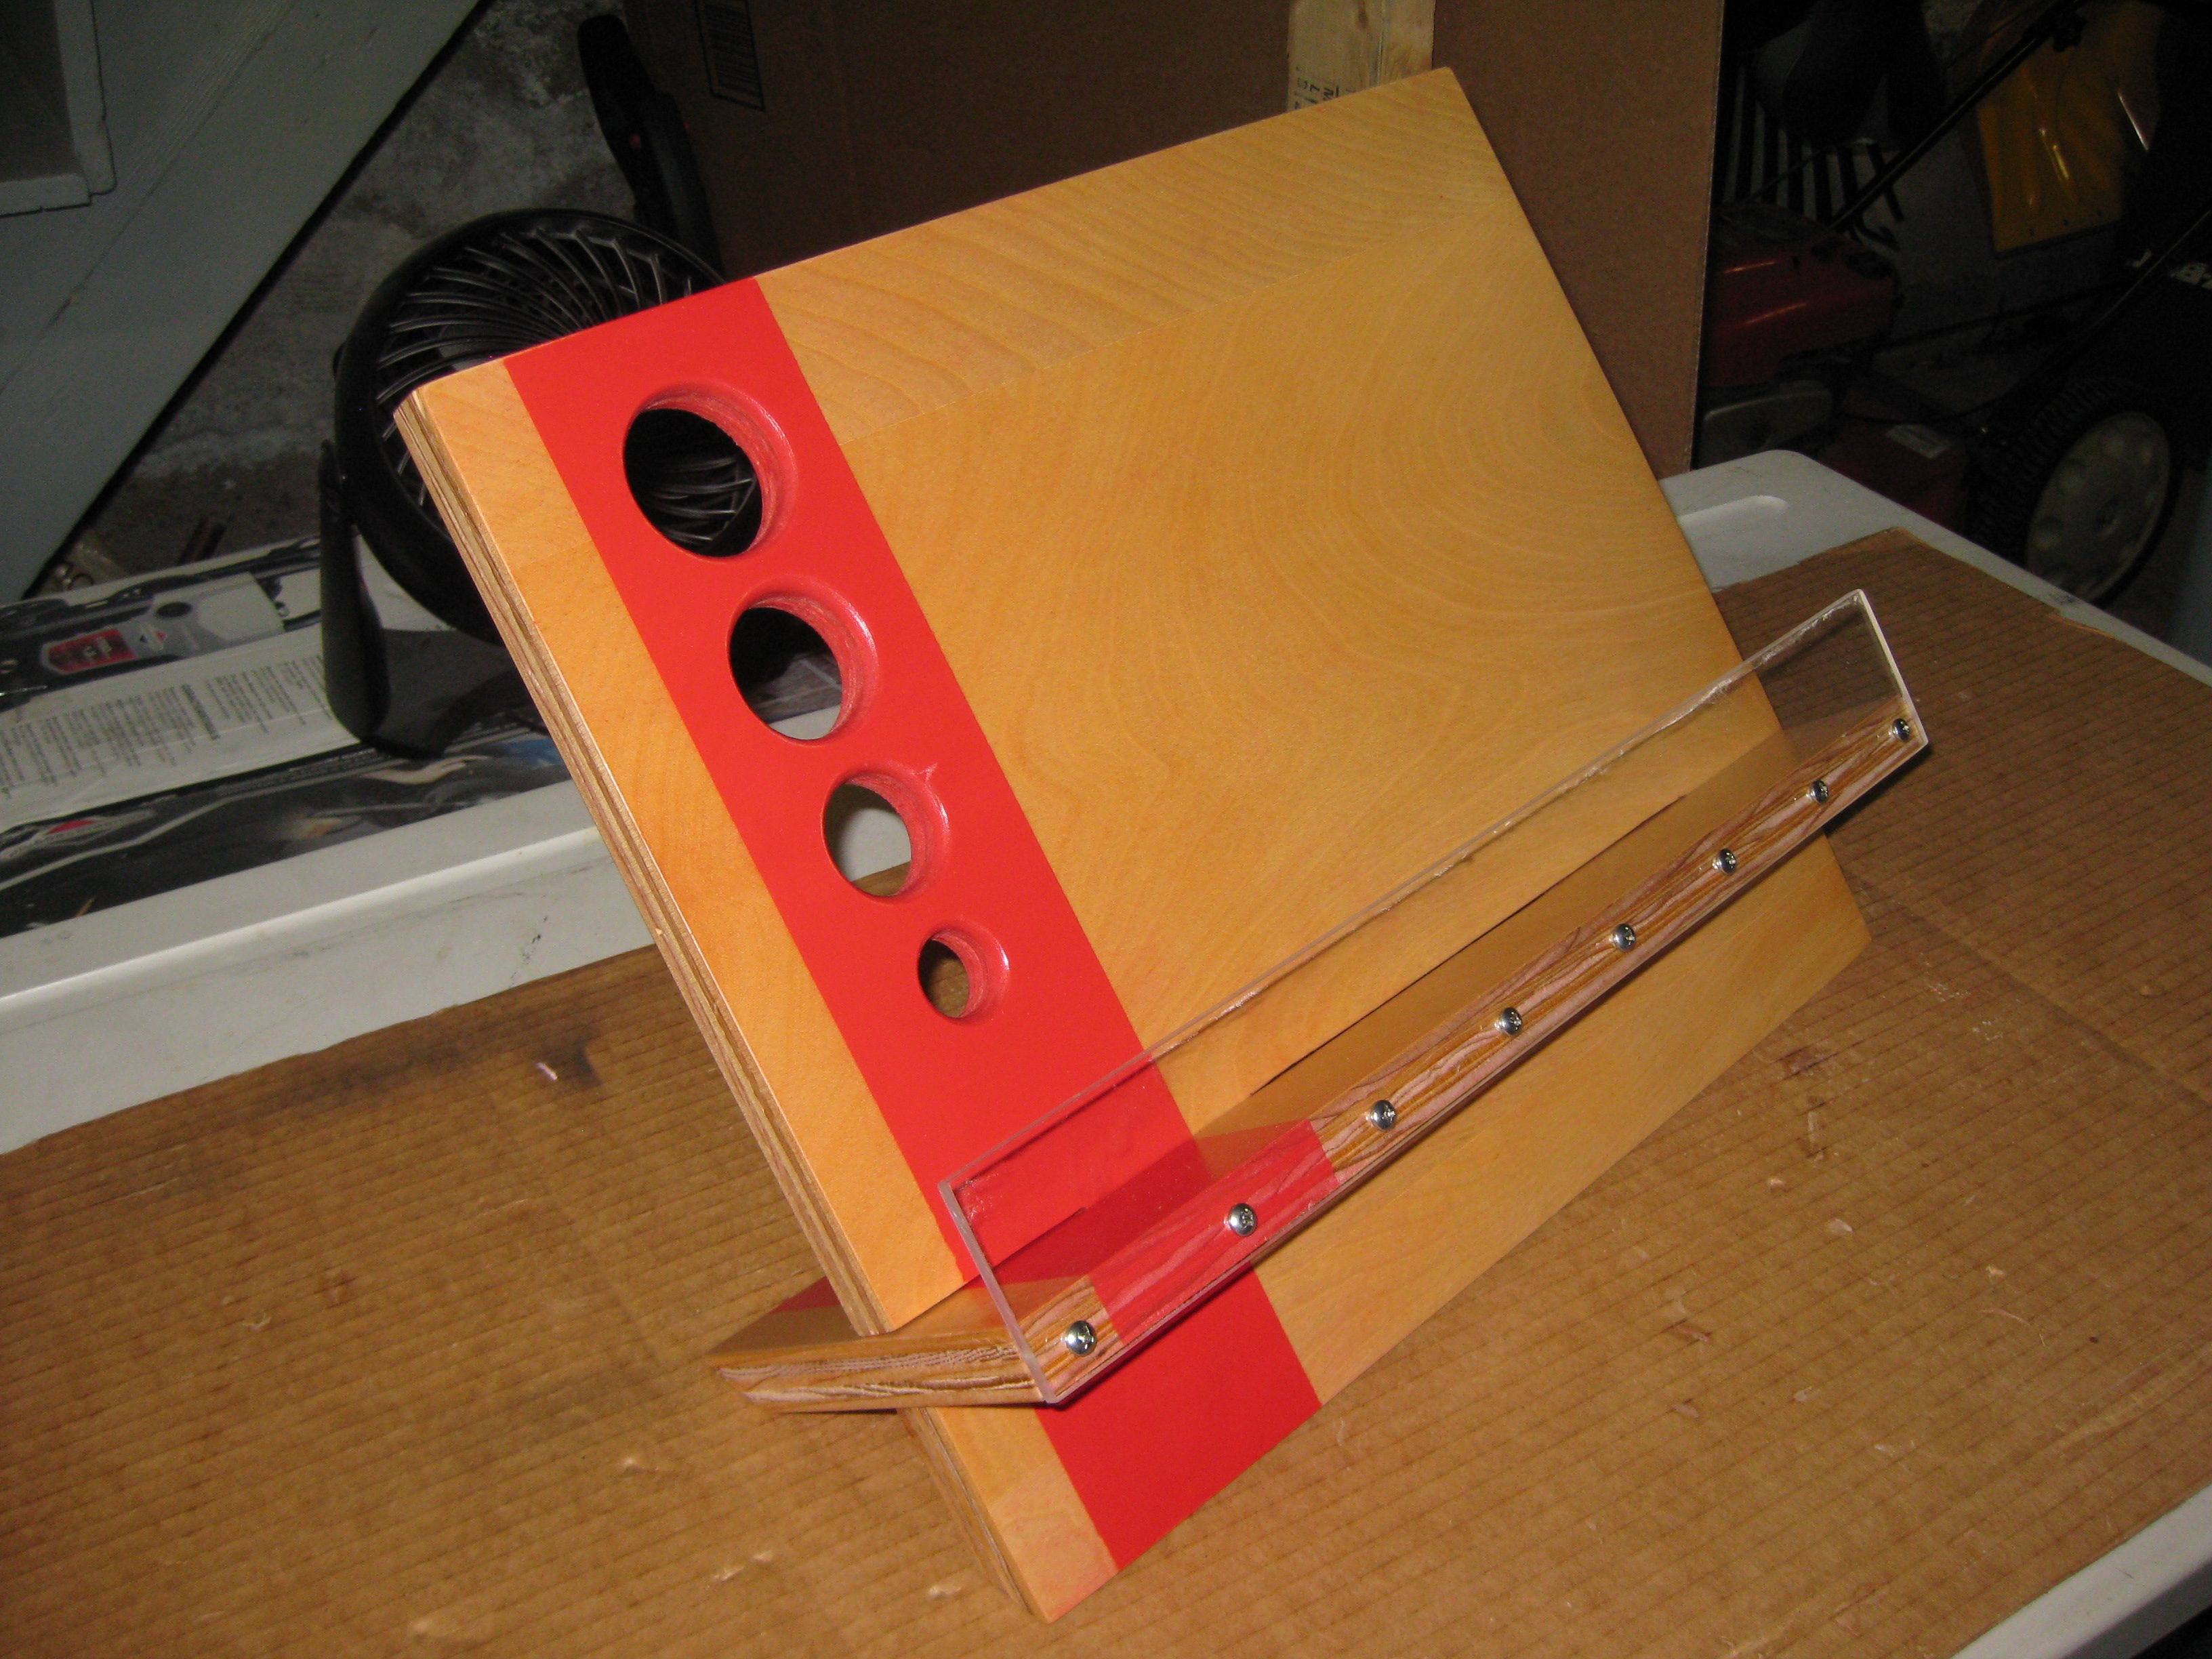 The Flat Stacking Cookbook Stand